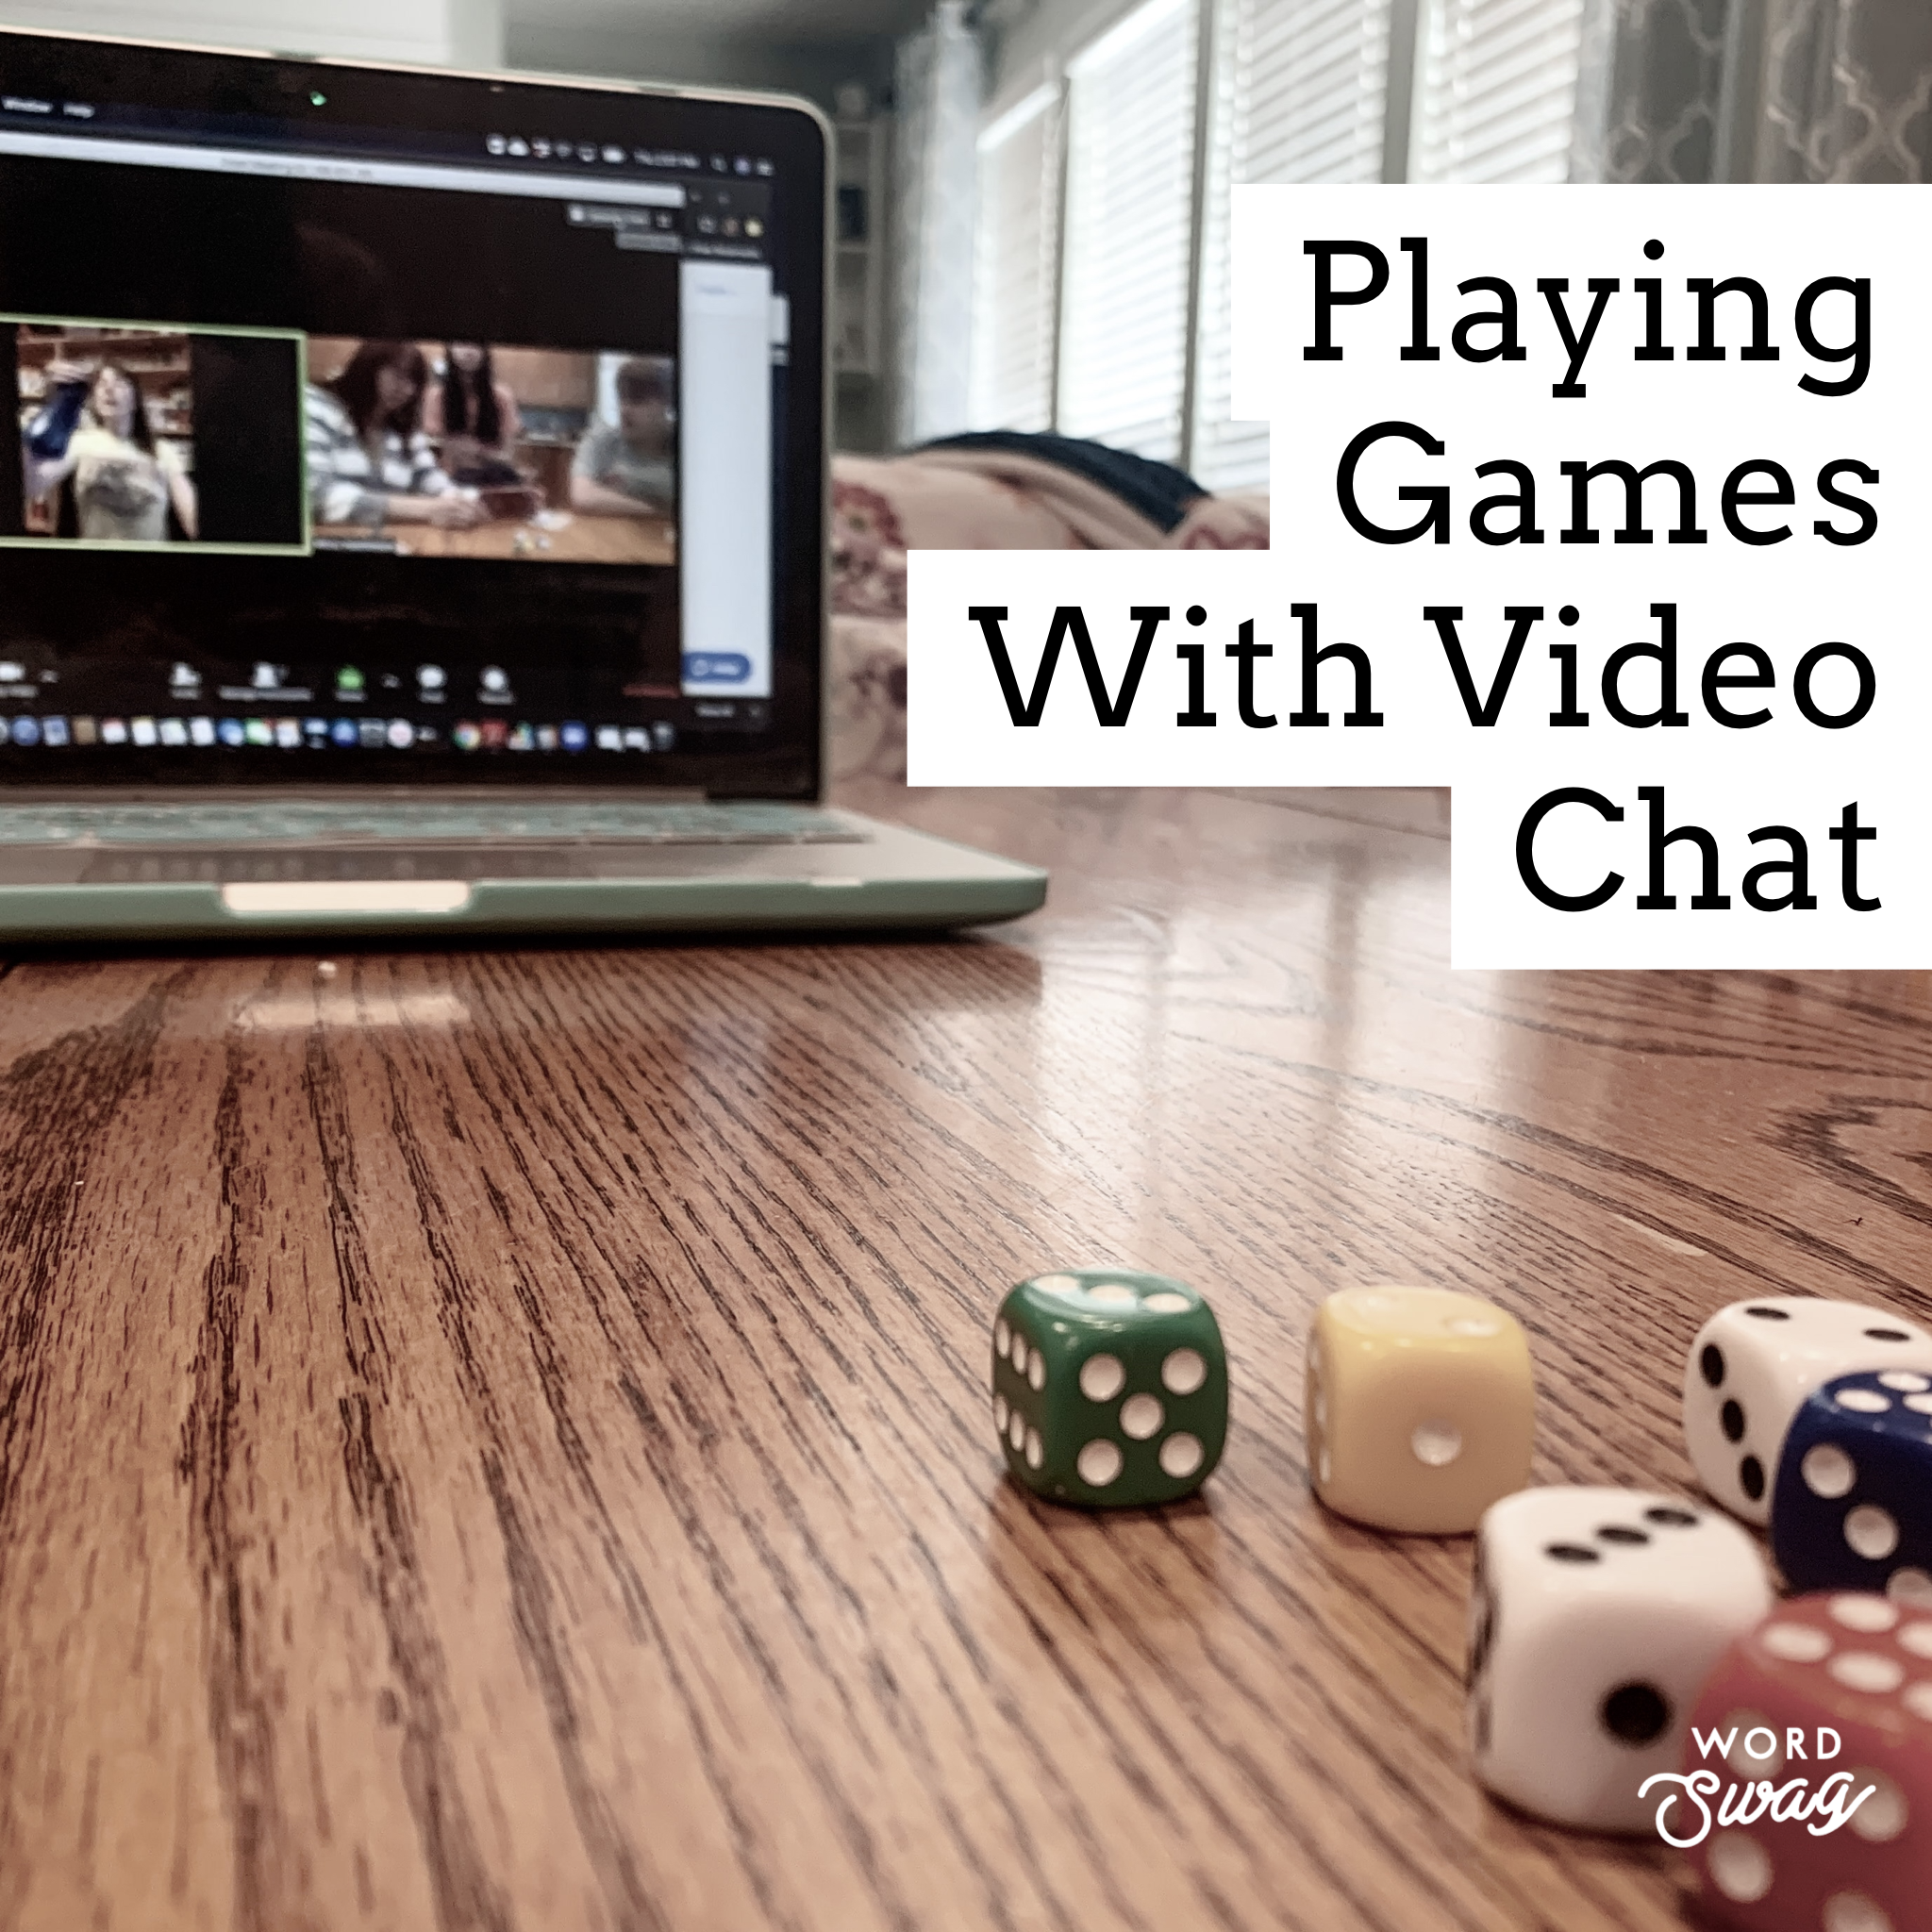 If you are stuck inside, play games over video chat as a fun indoor activity.